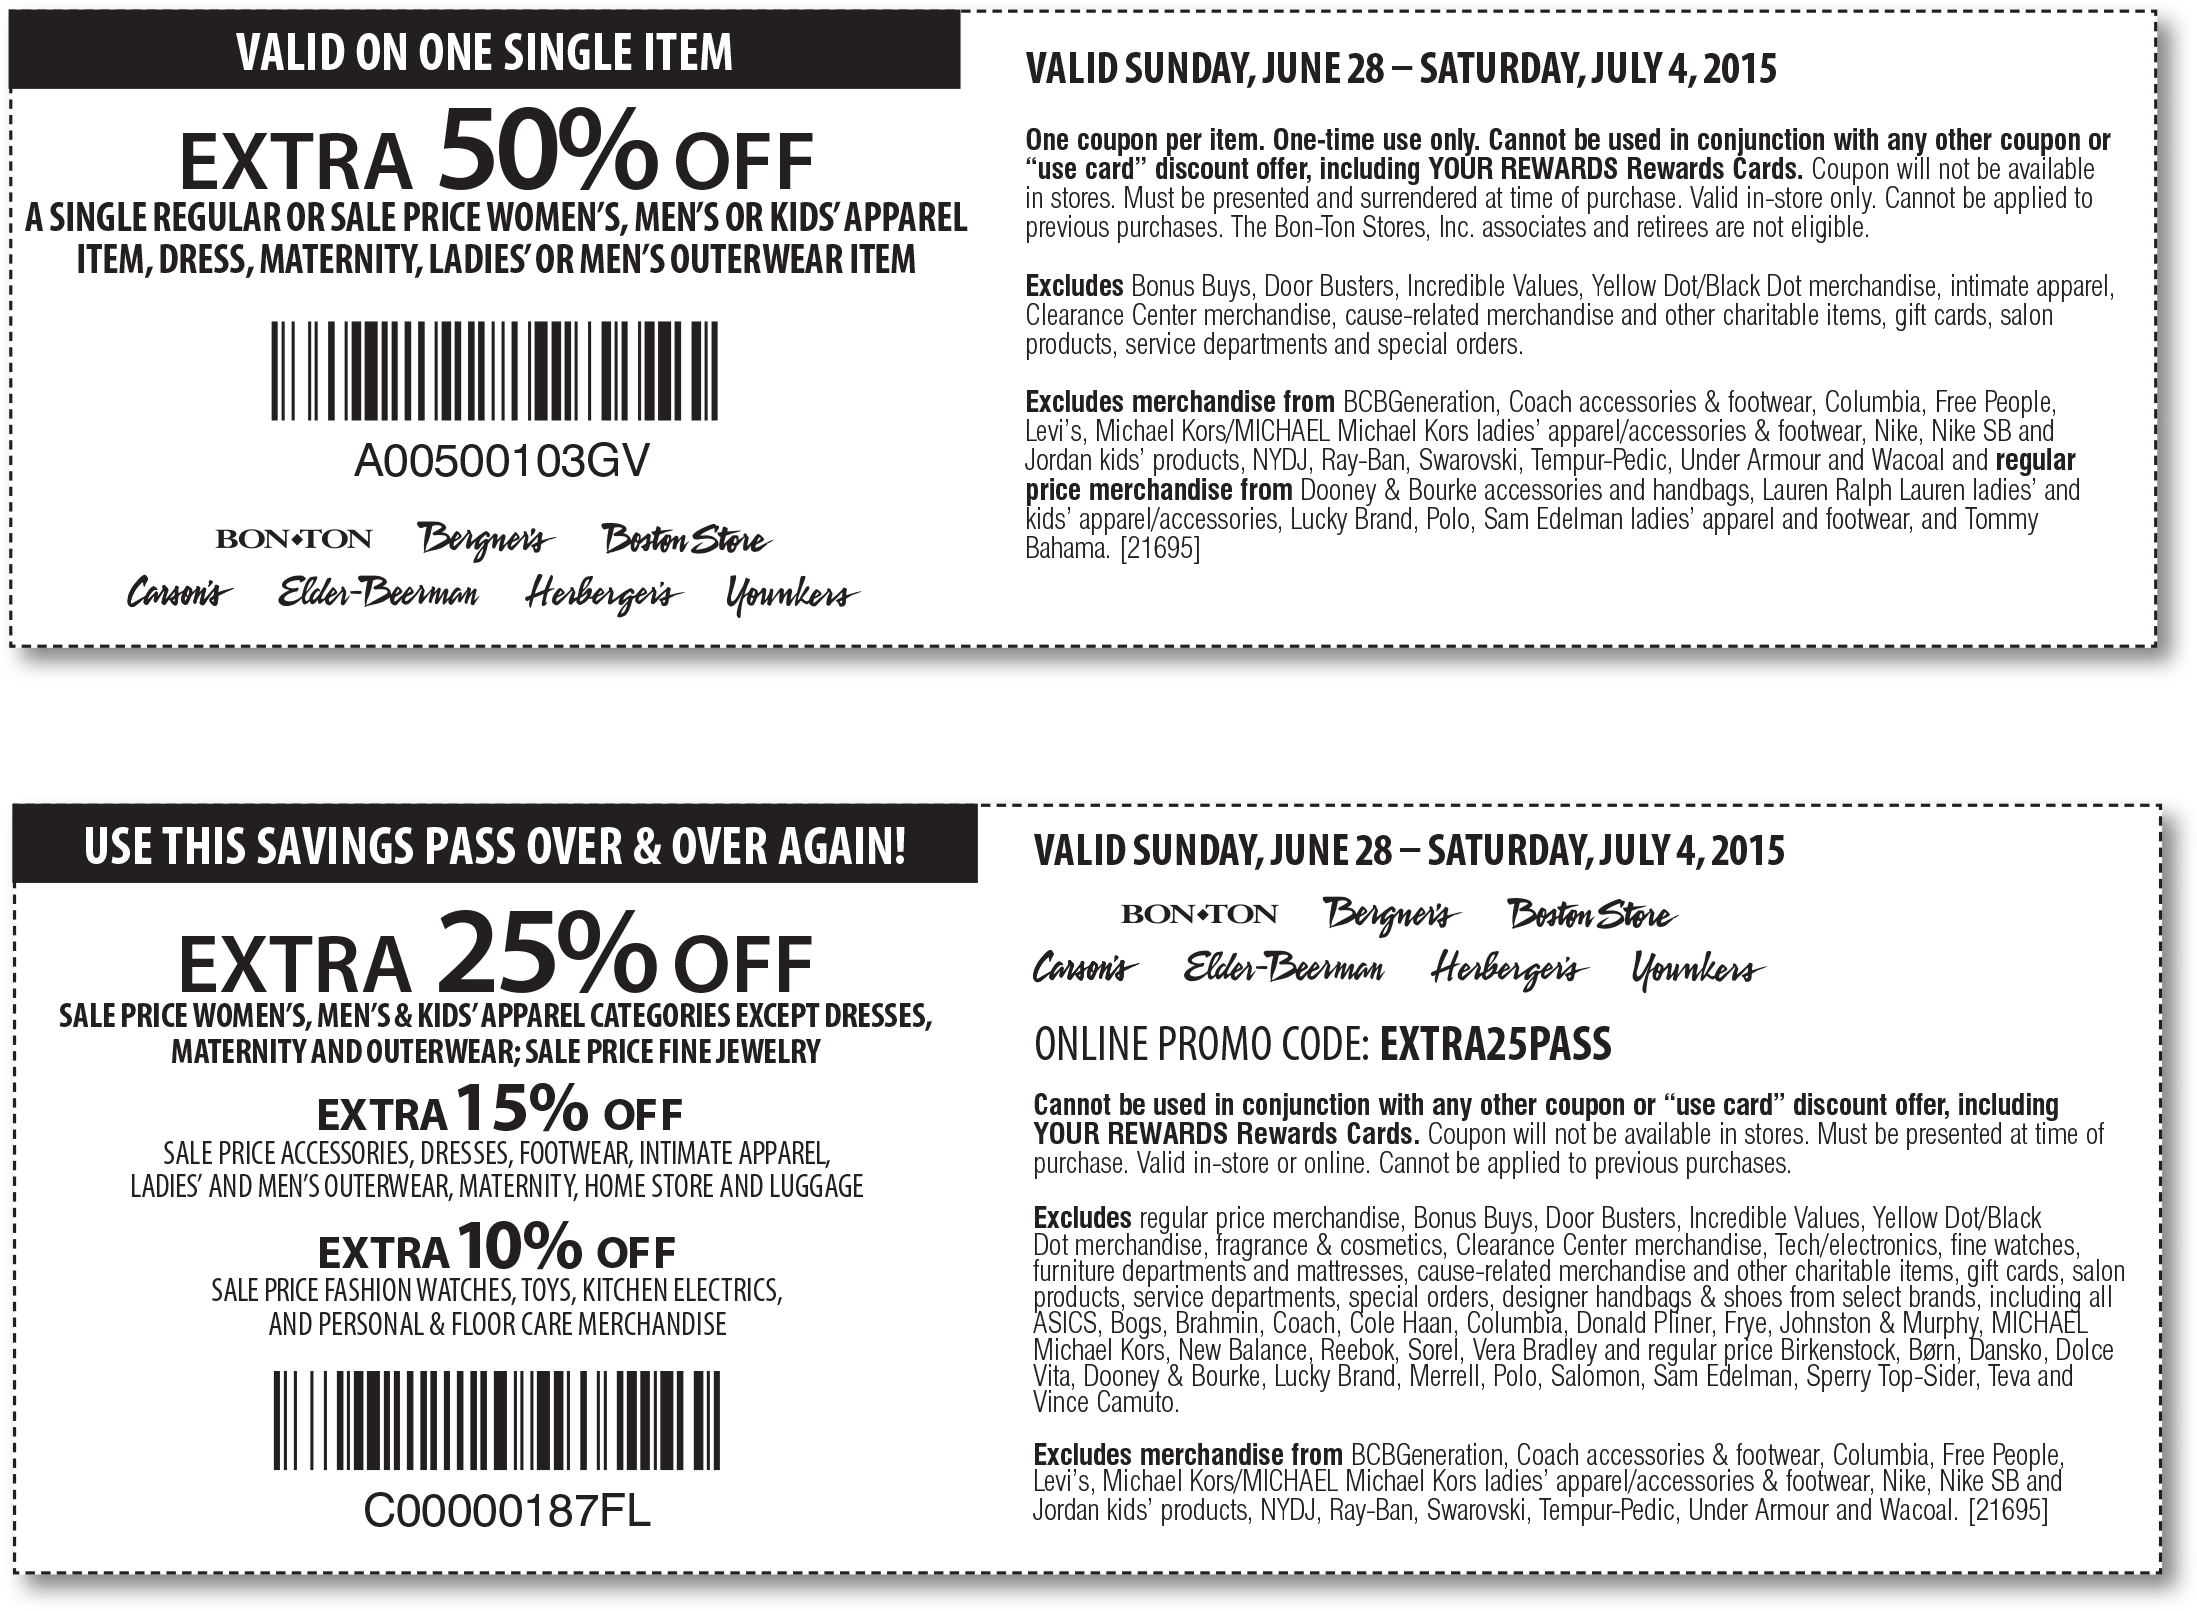 Carsons Coupon May 2019 Extra 50% off a single item & more at Carsons, Bon Ton & sister stores, or online via promo code EXTRA25PASS